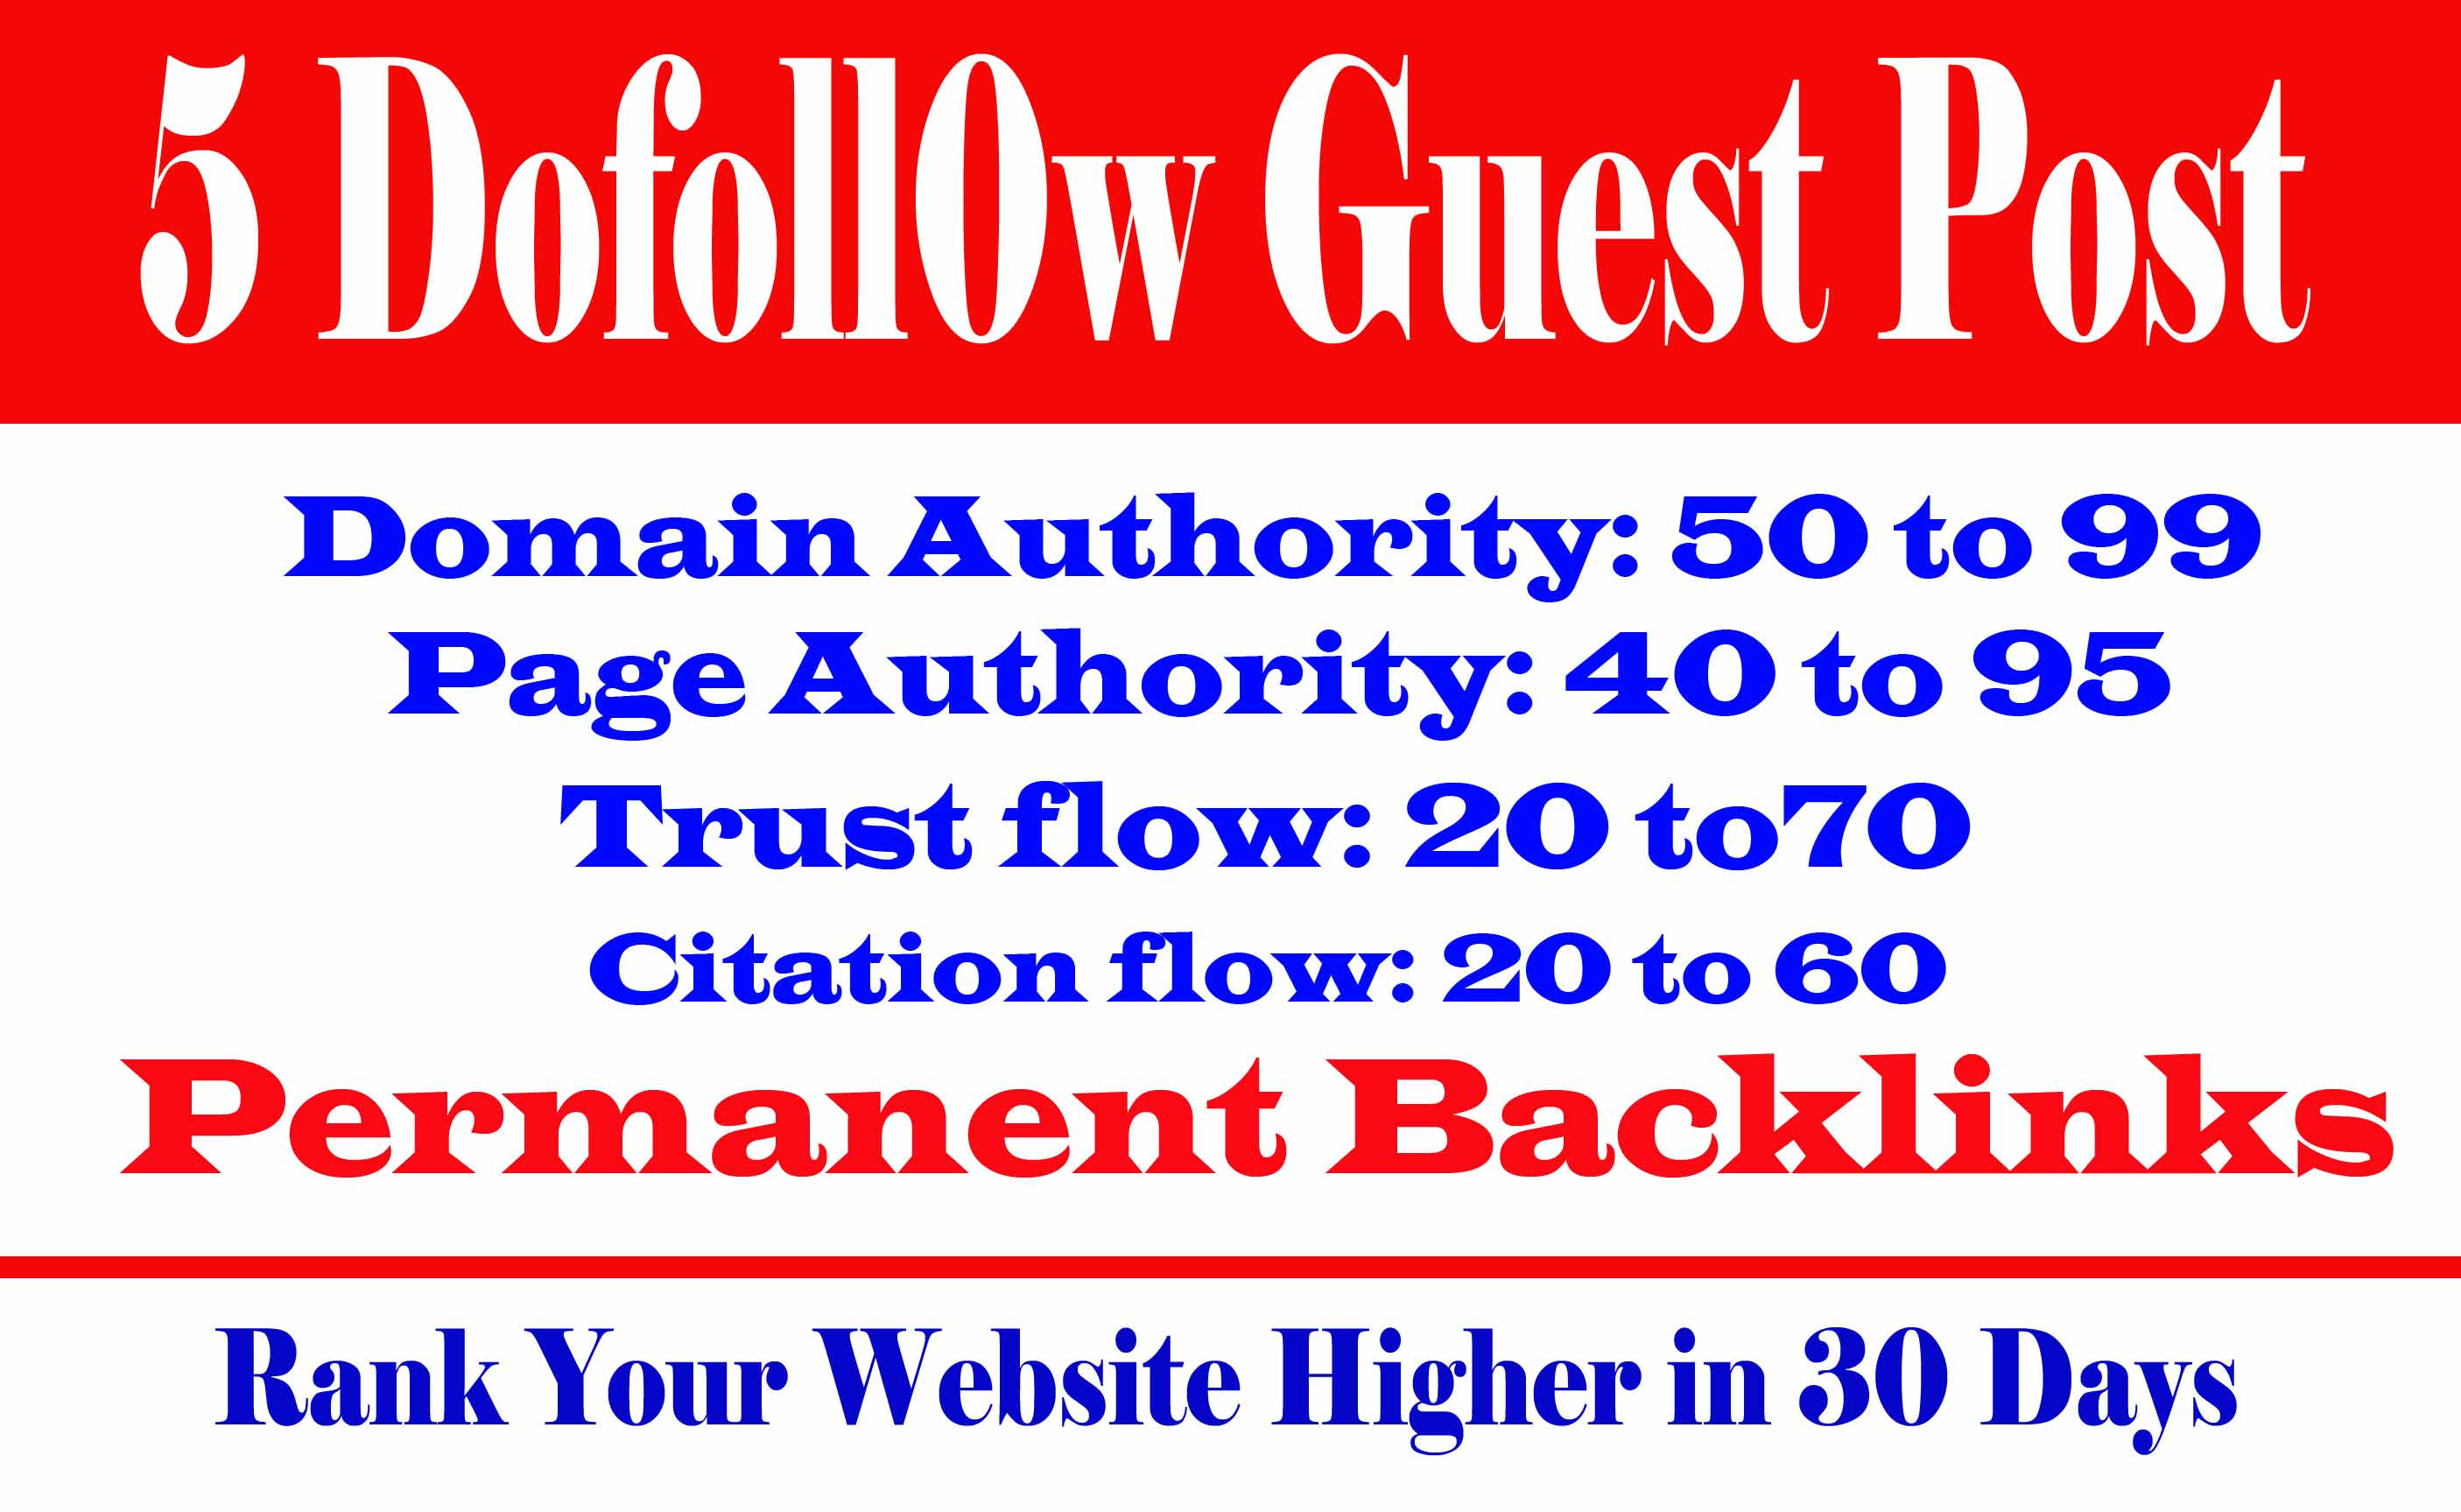 I will do 5 d0f0ll0w guest posts da 99 to 50 with unique contents